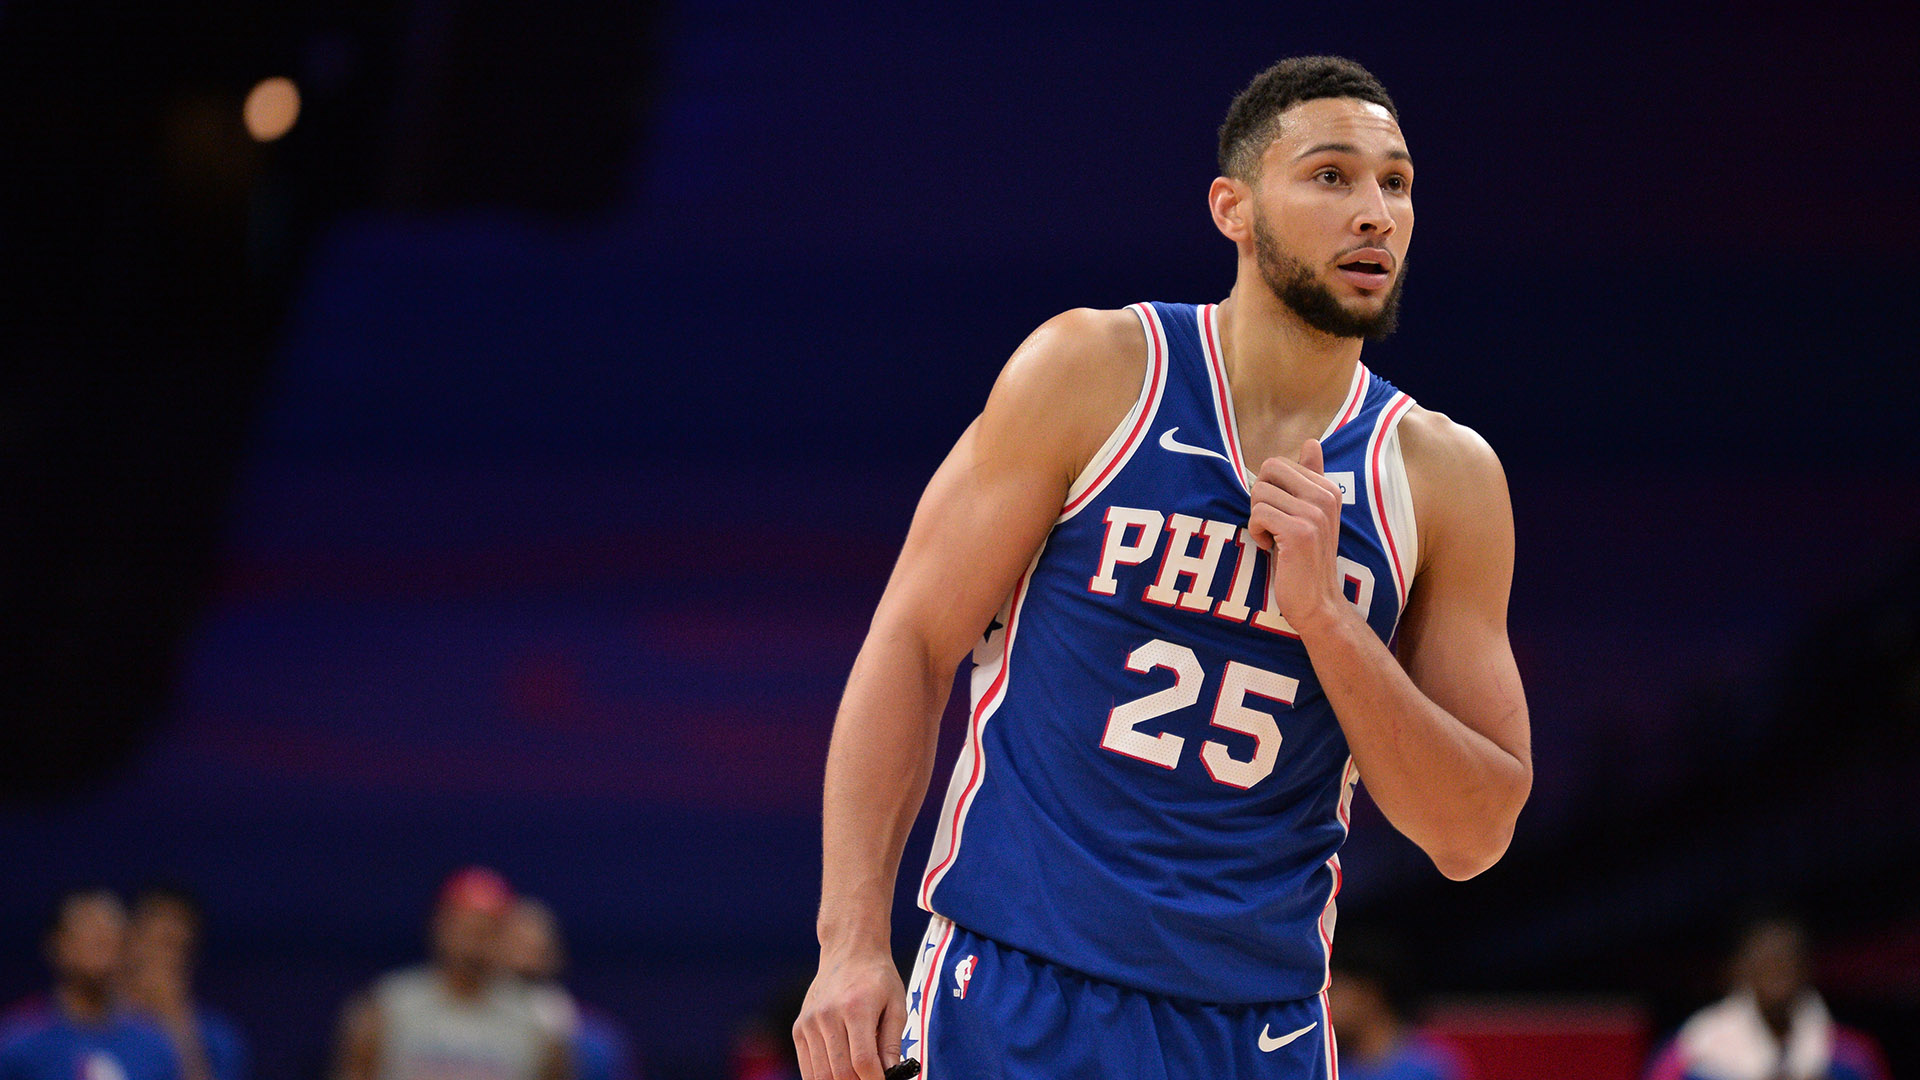 Reports: Simmons won't report to training camp